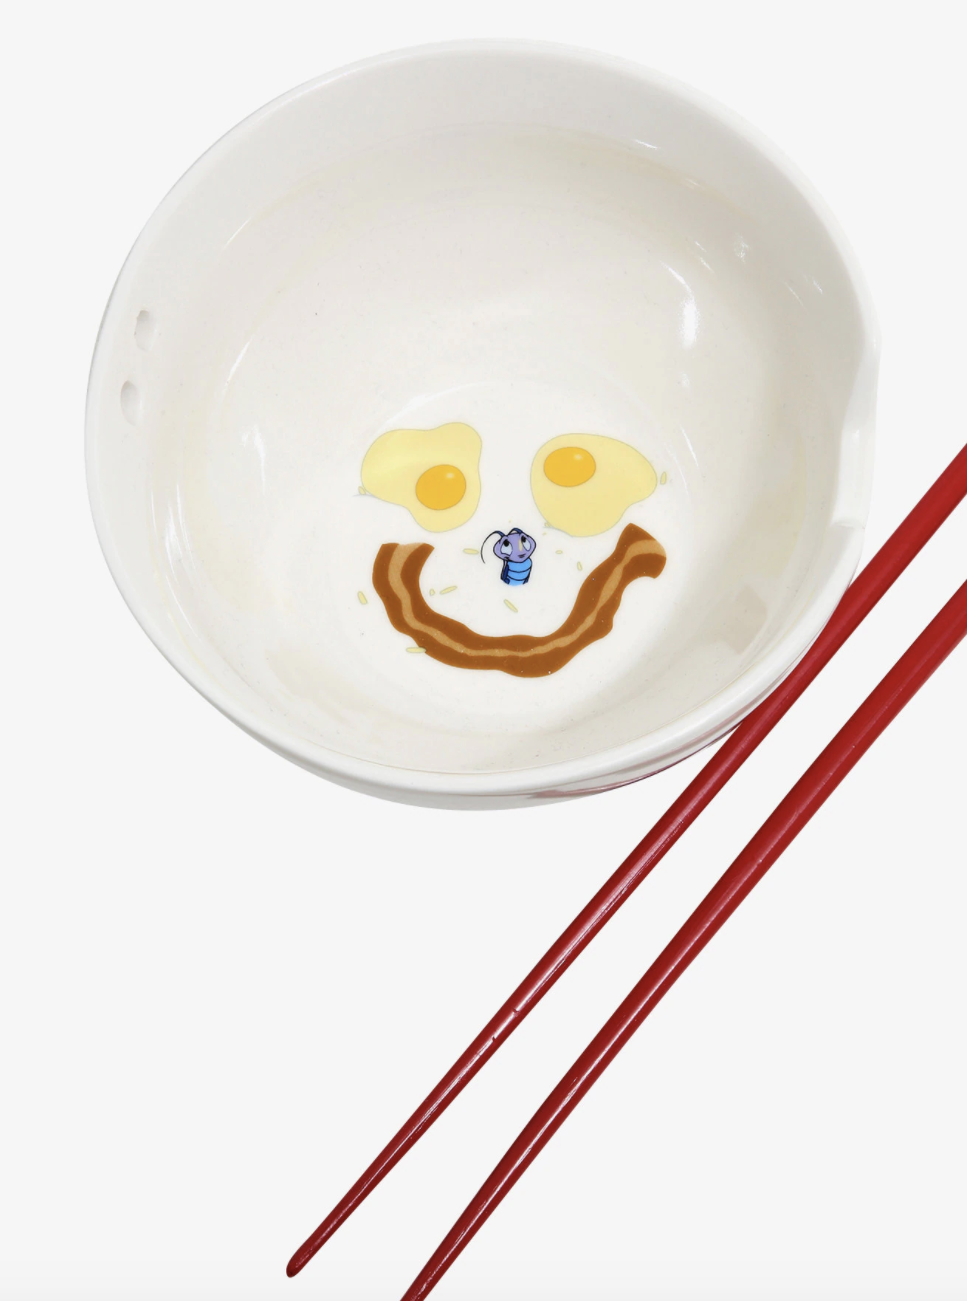 a bowl with the eggs and smile made of bacon drawn on the inside in addition to kri-kee from the movie mulan alongside red chopsticks